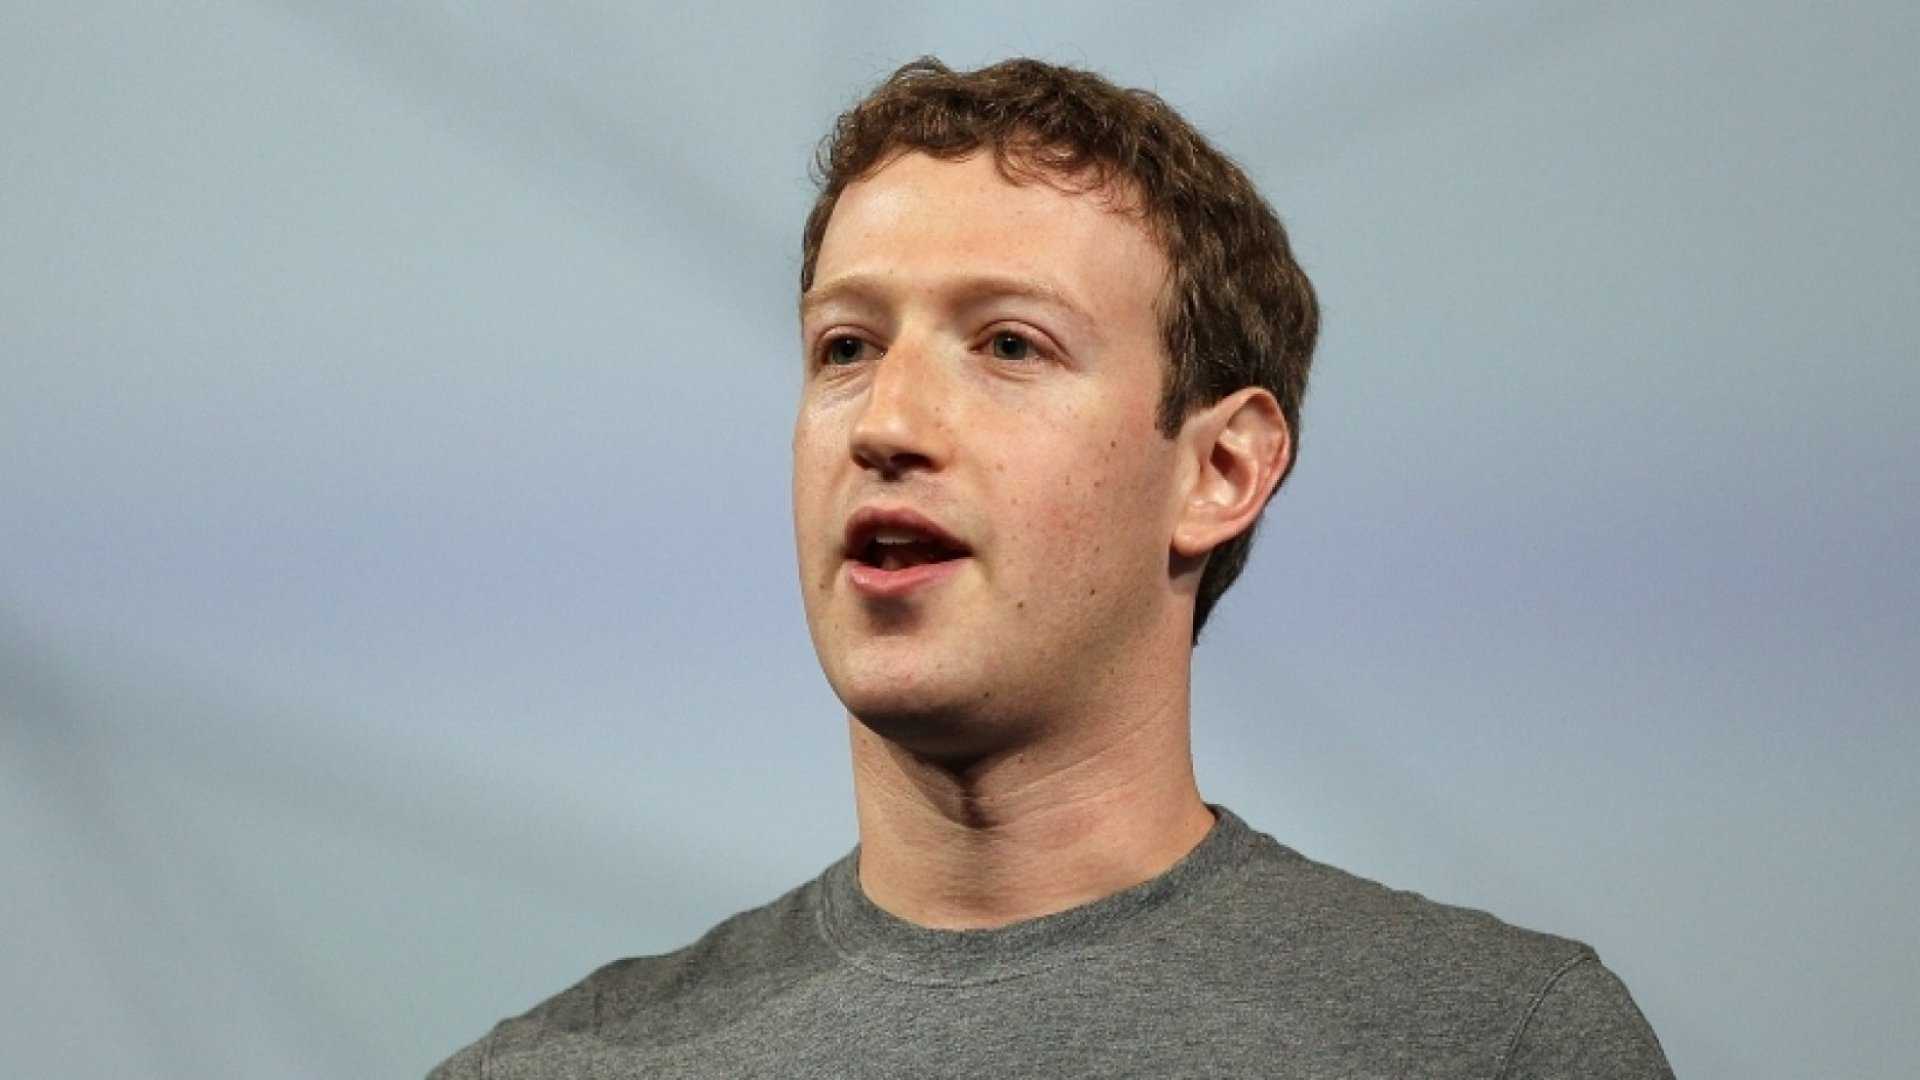 This Is Mark Zuckerberg's Most Admirable Quality as a Leader, According to Quip's CEO